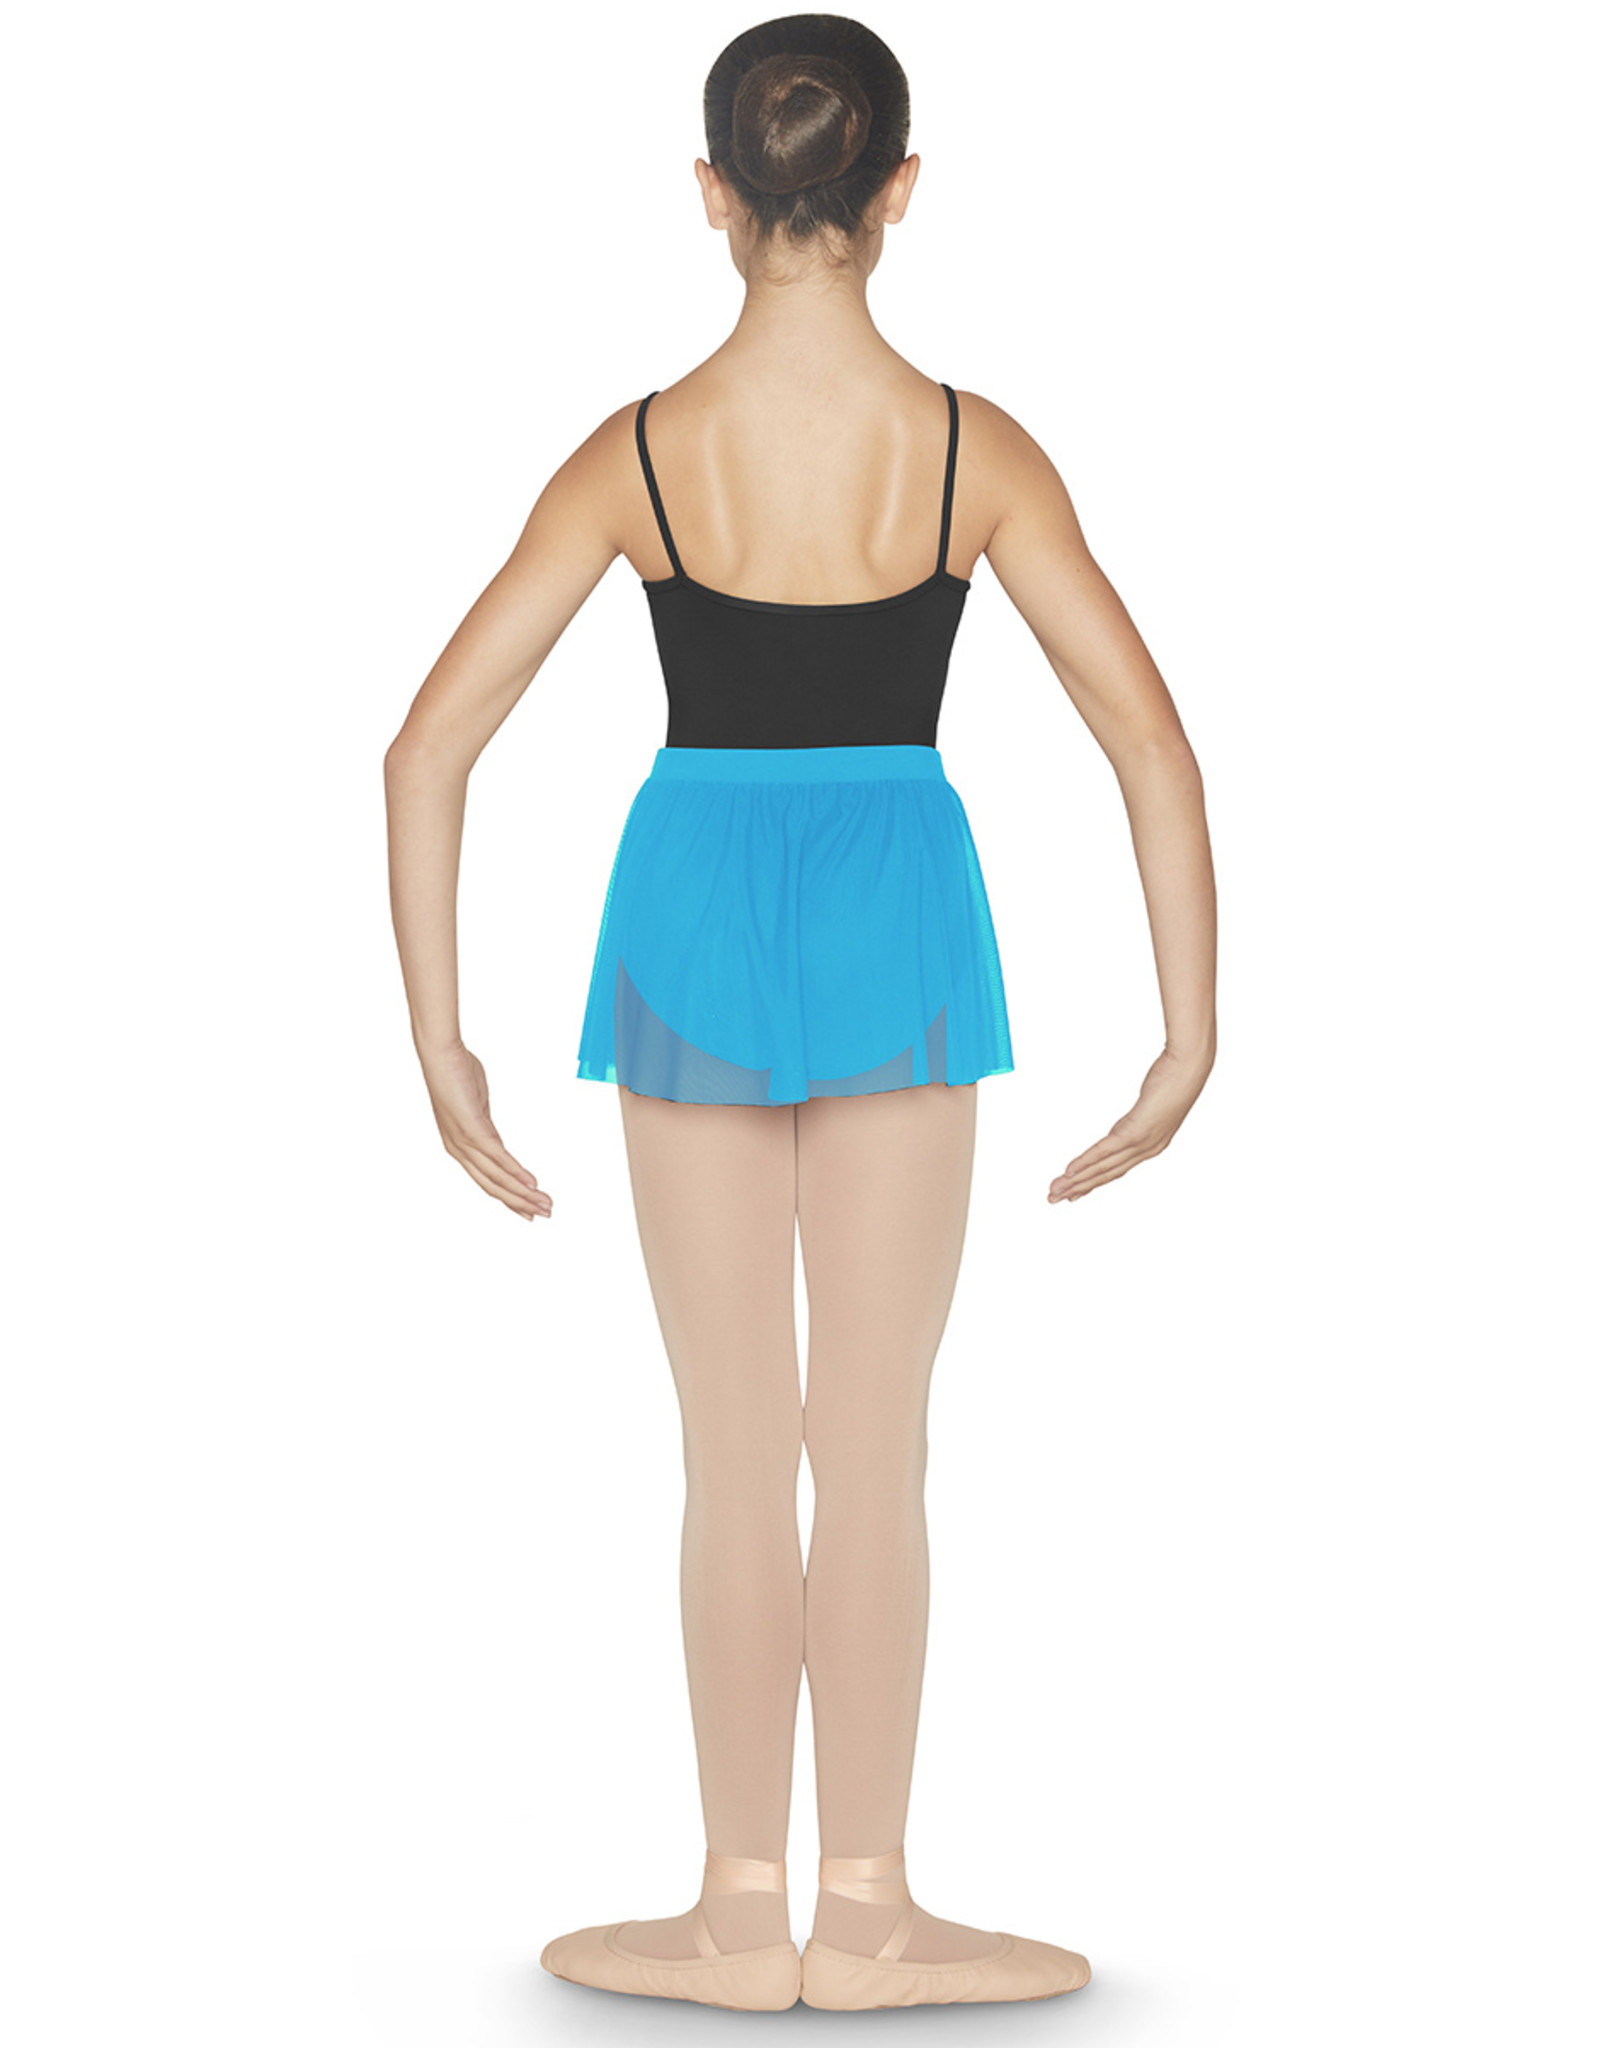 Bloch Bloch Placement Flock Wrap Skirt - CR9931